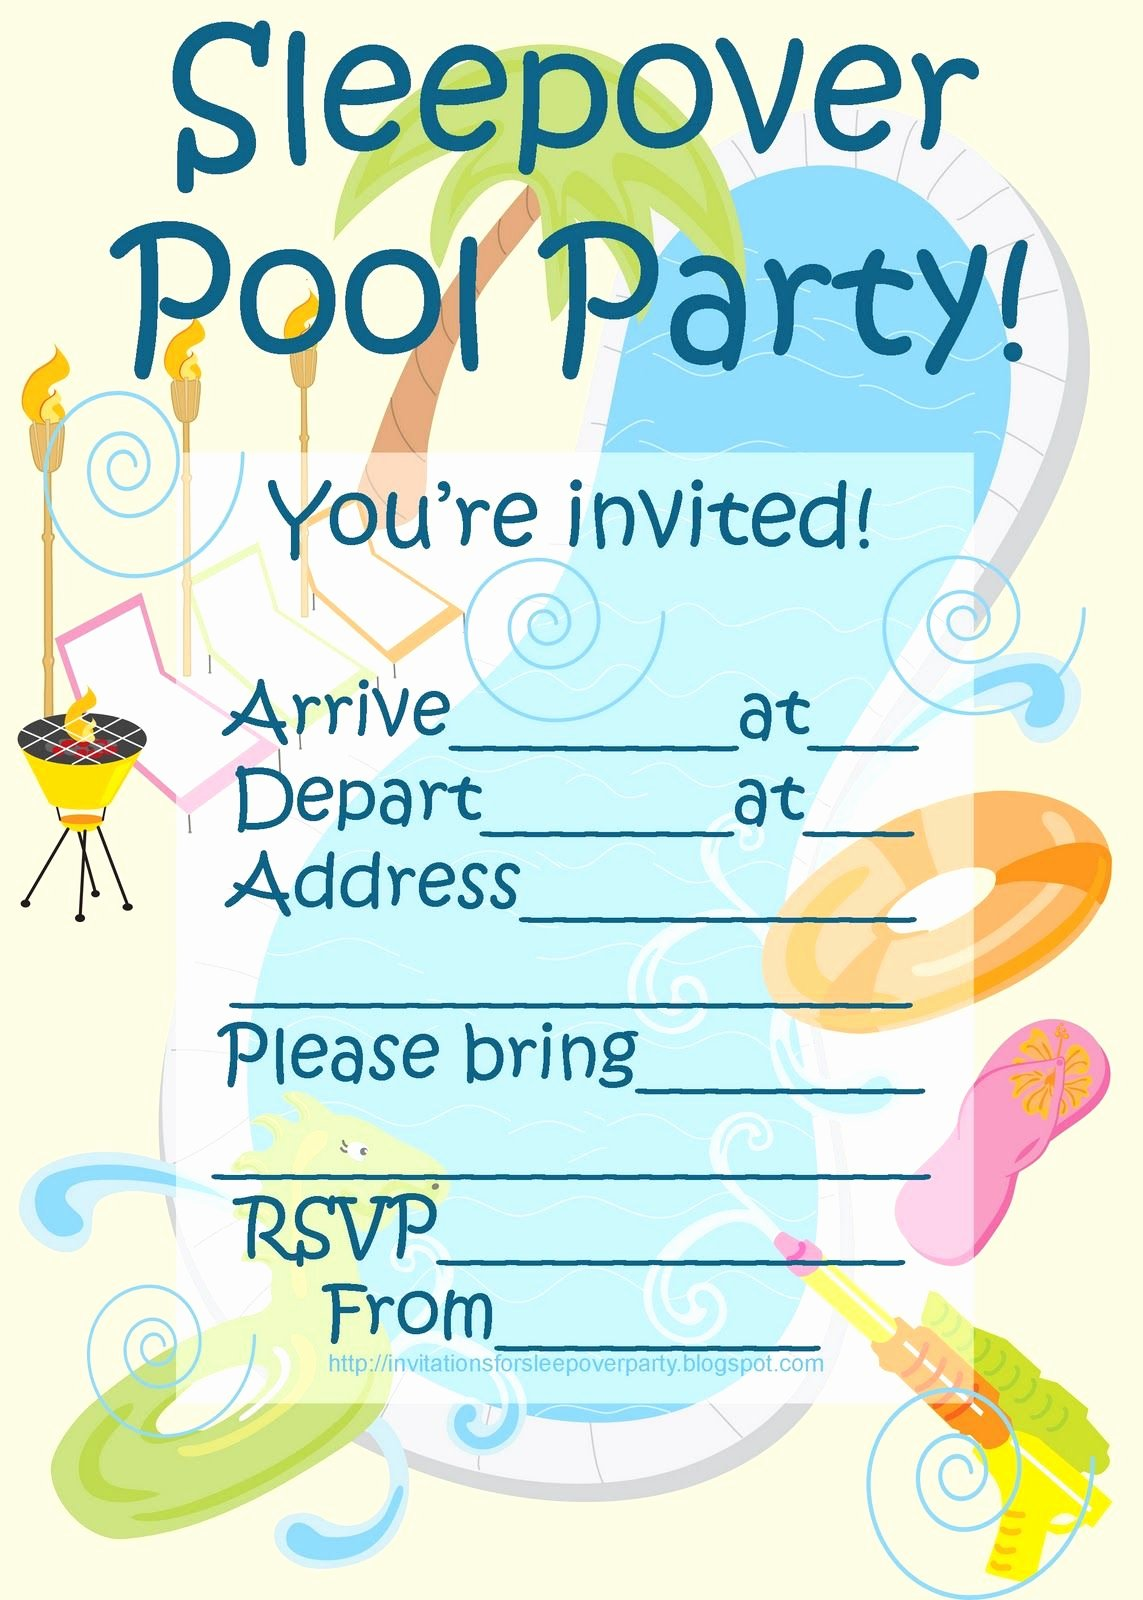 Blank Pool Party Invitations Inspirational Invitations for Sleepover Party Sleepover Pool Party